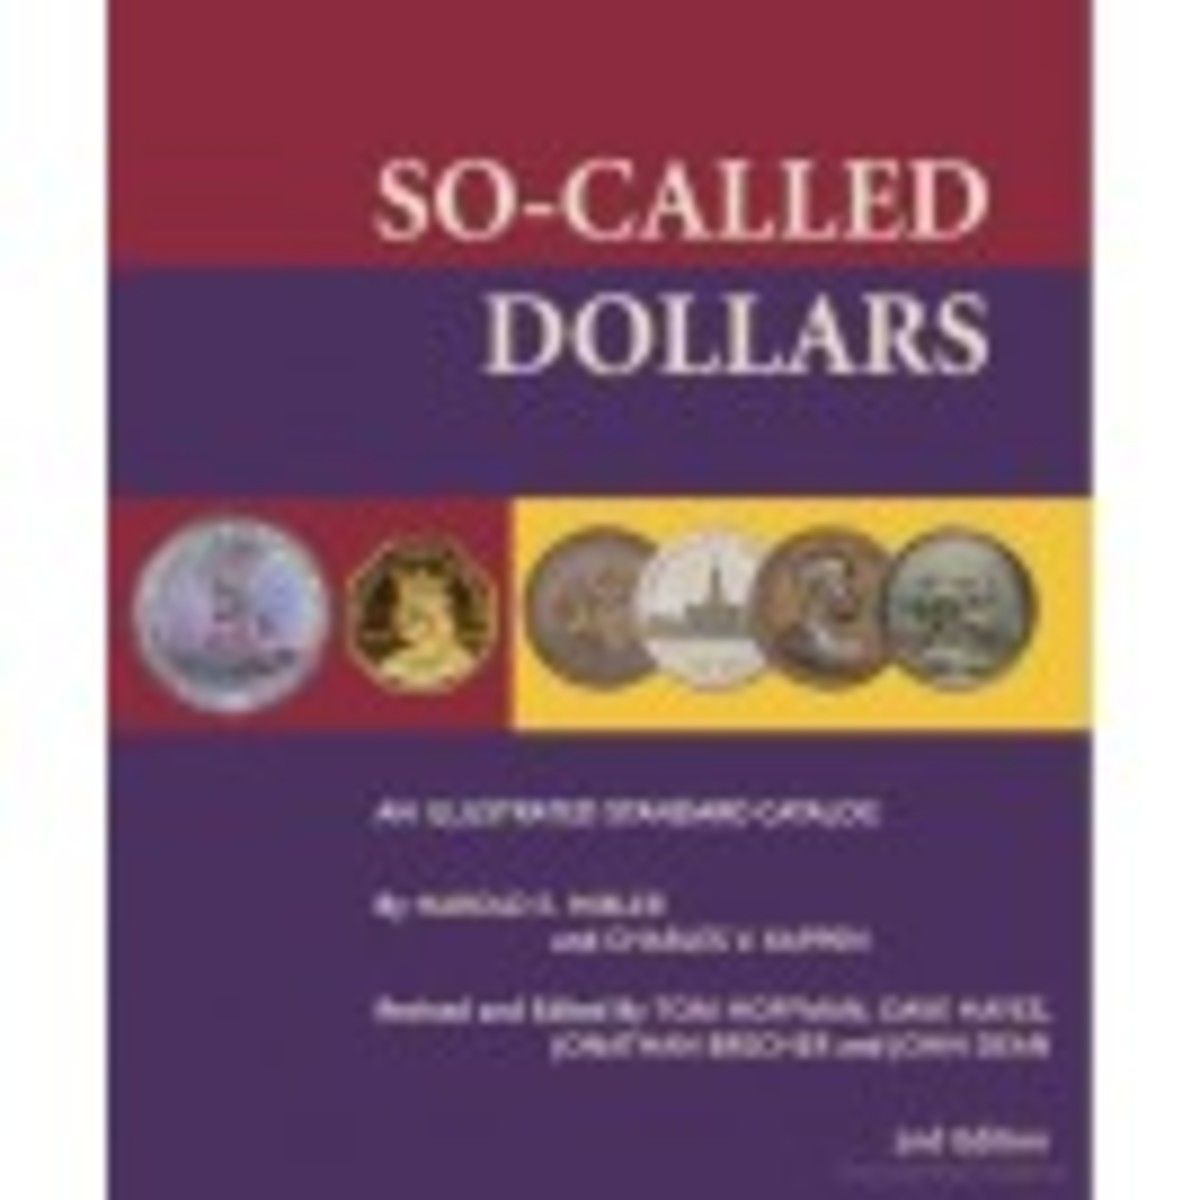 So-Called Dollars